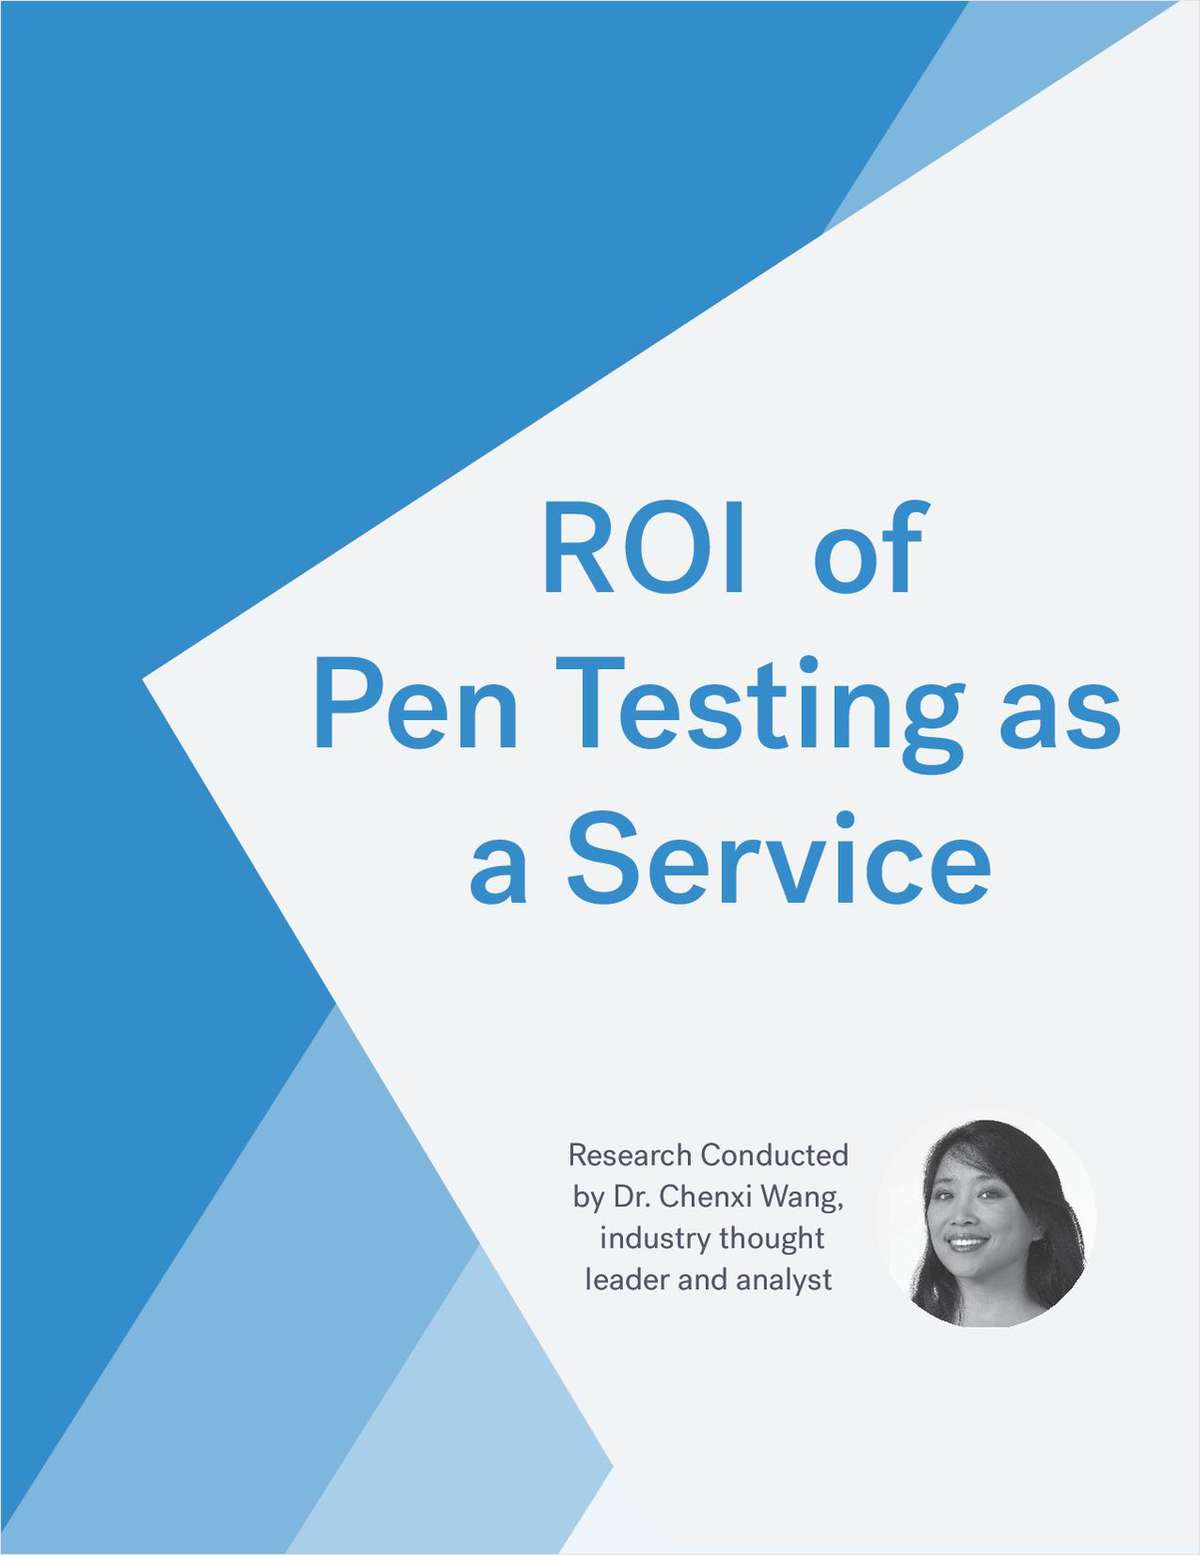 The ROI of Pentesting-as-a-Service